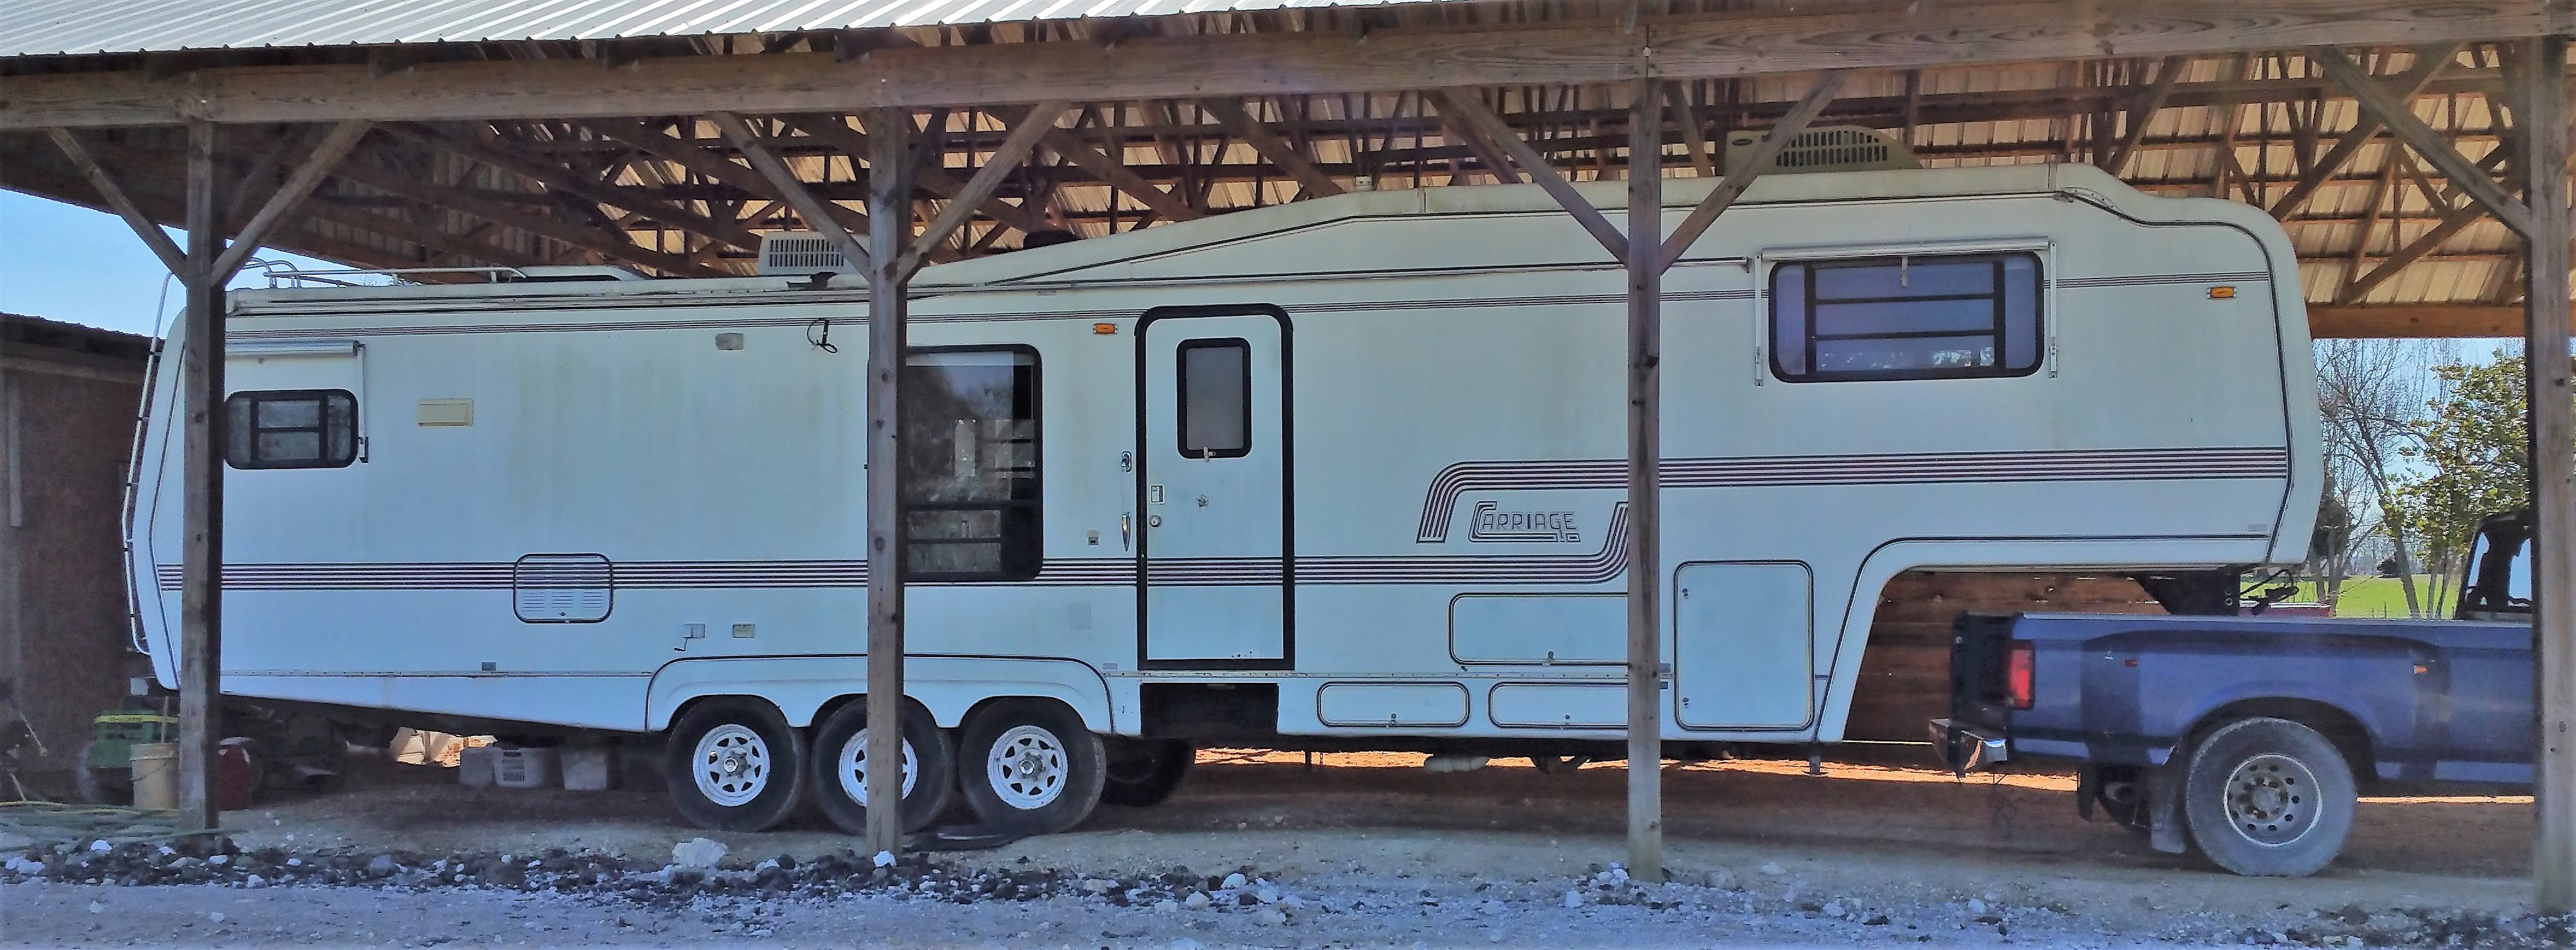 1991 37' Carriage 5th Wheel Camper